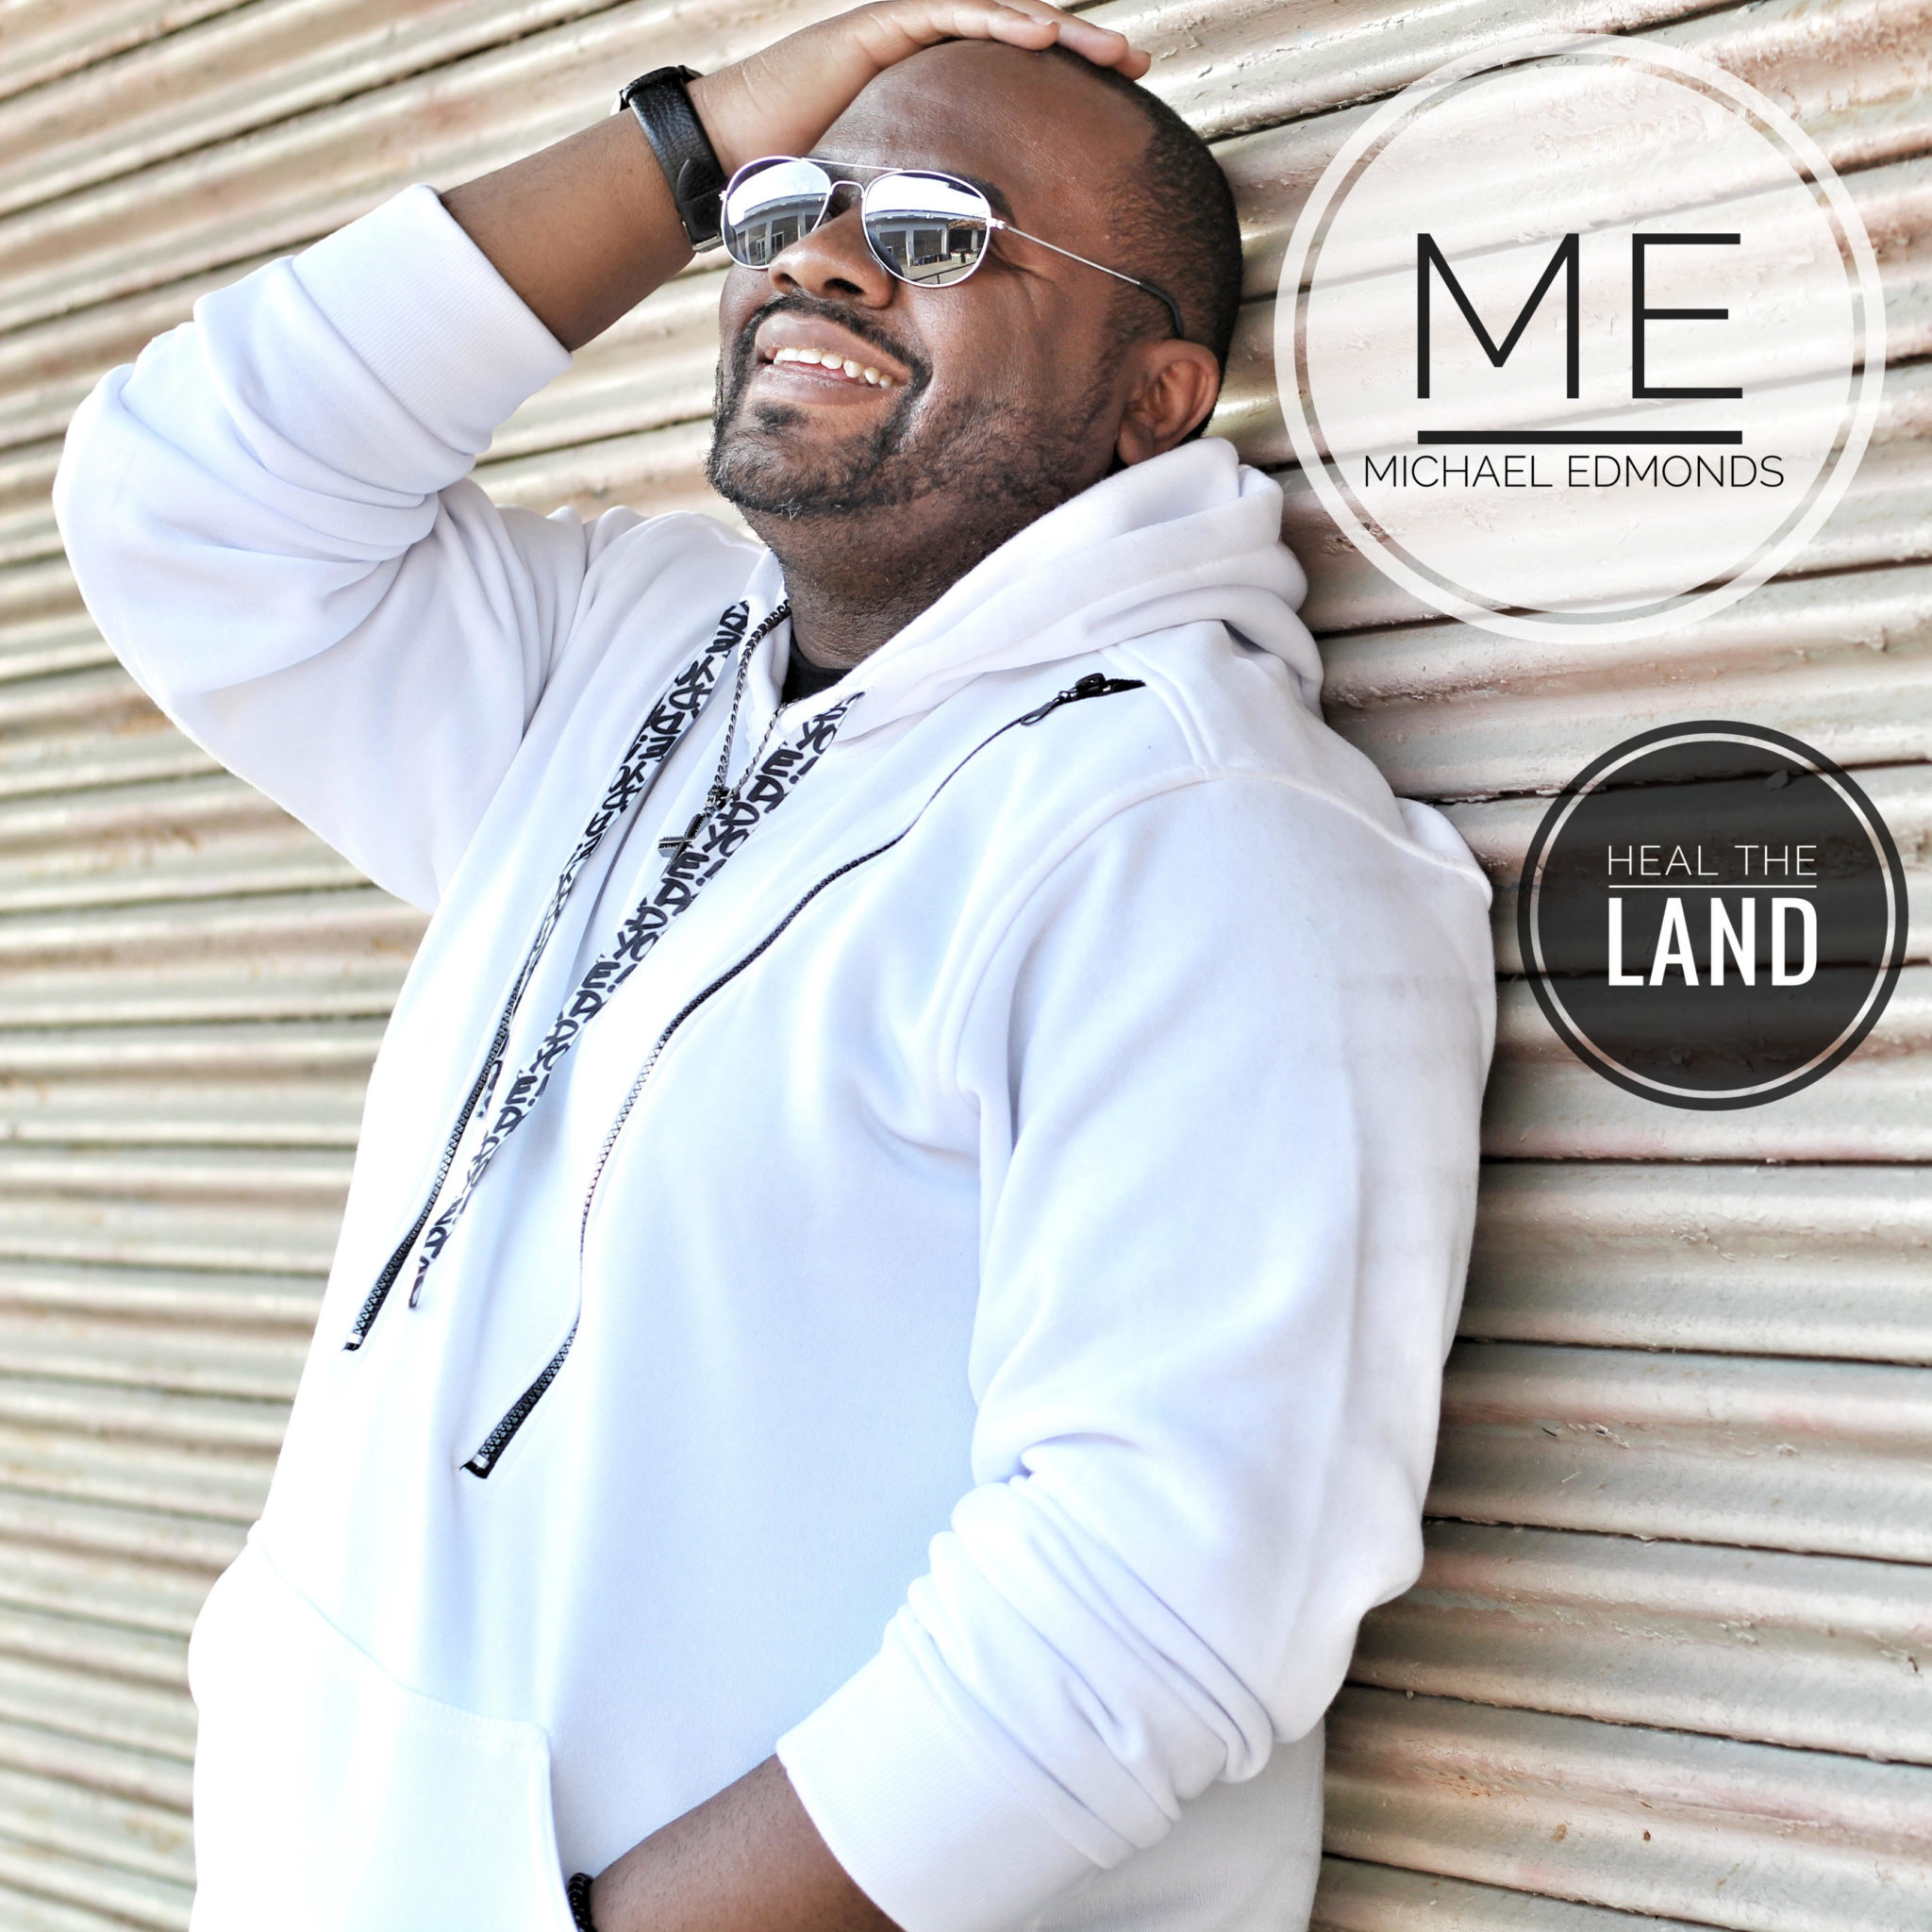 SINGER/SONGWRITER MICHAEL EDMONDS RELEASES NEW SINGLE